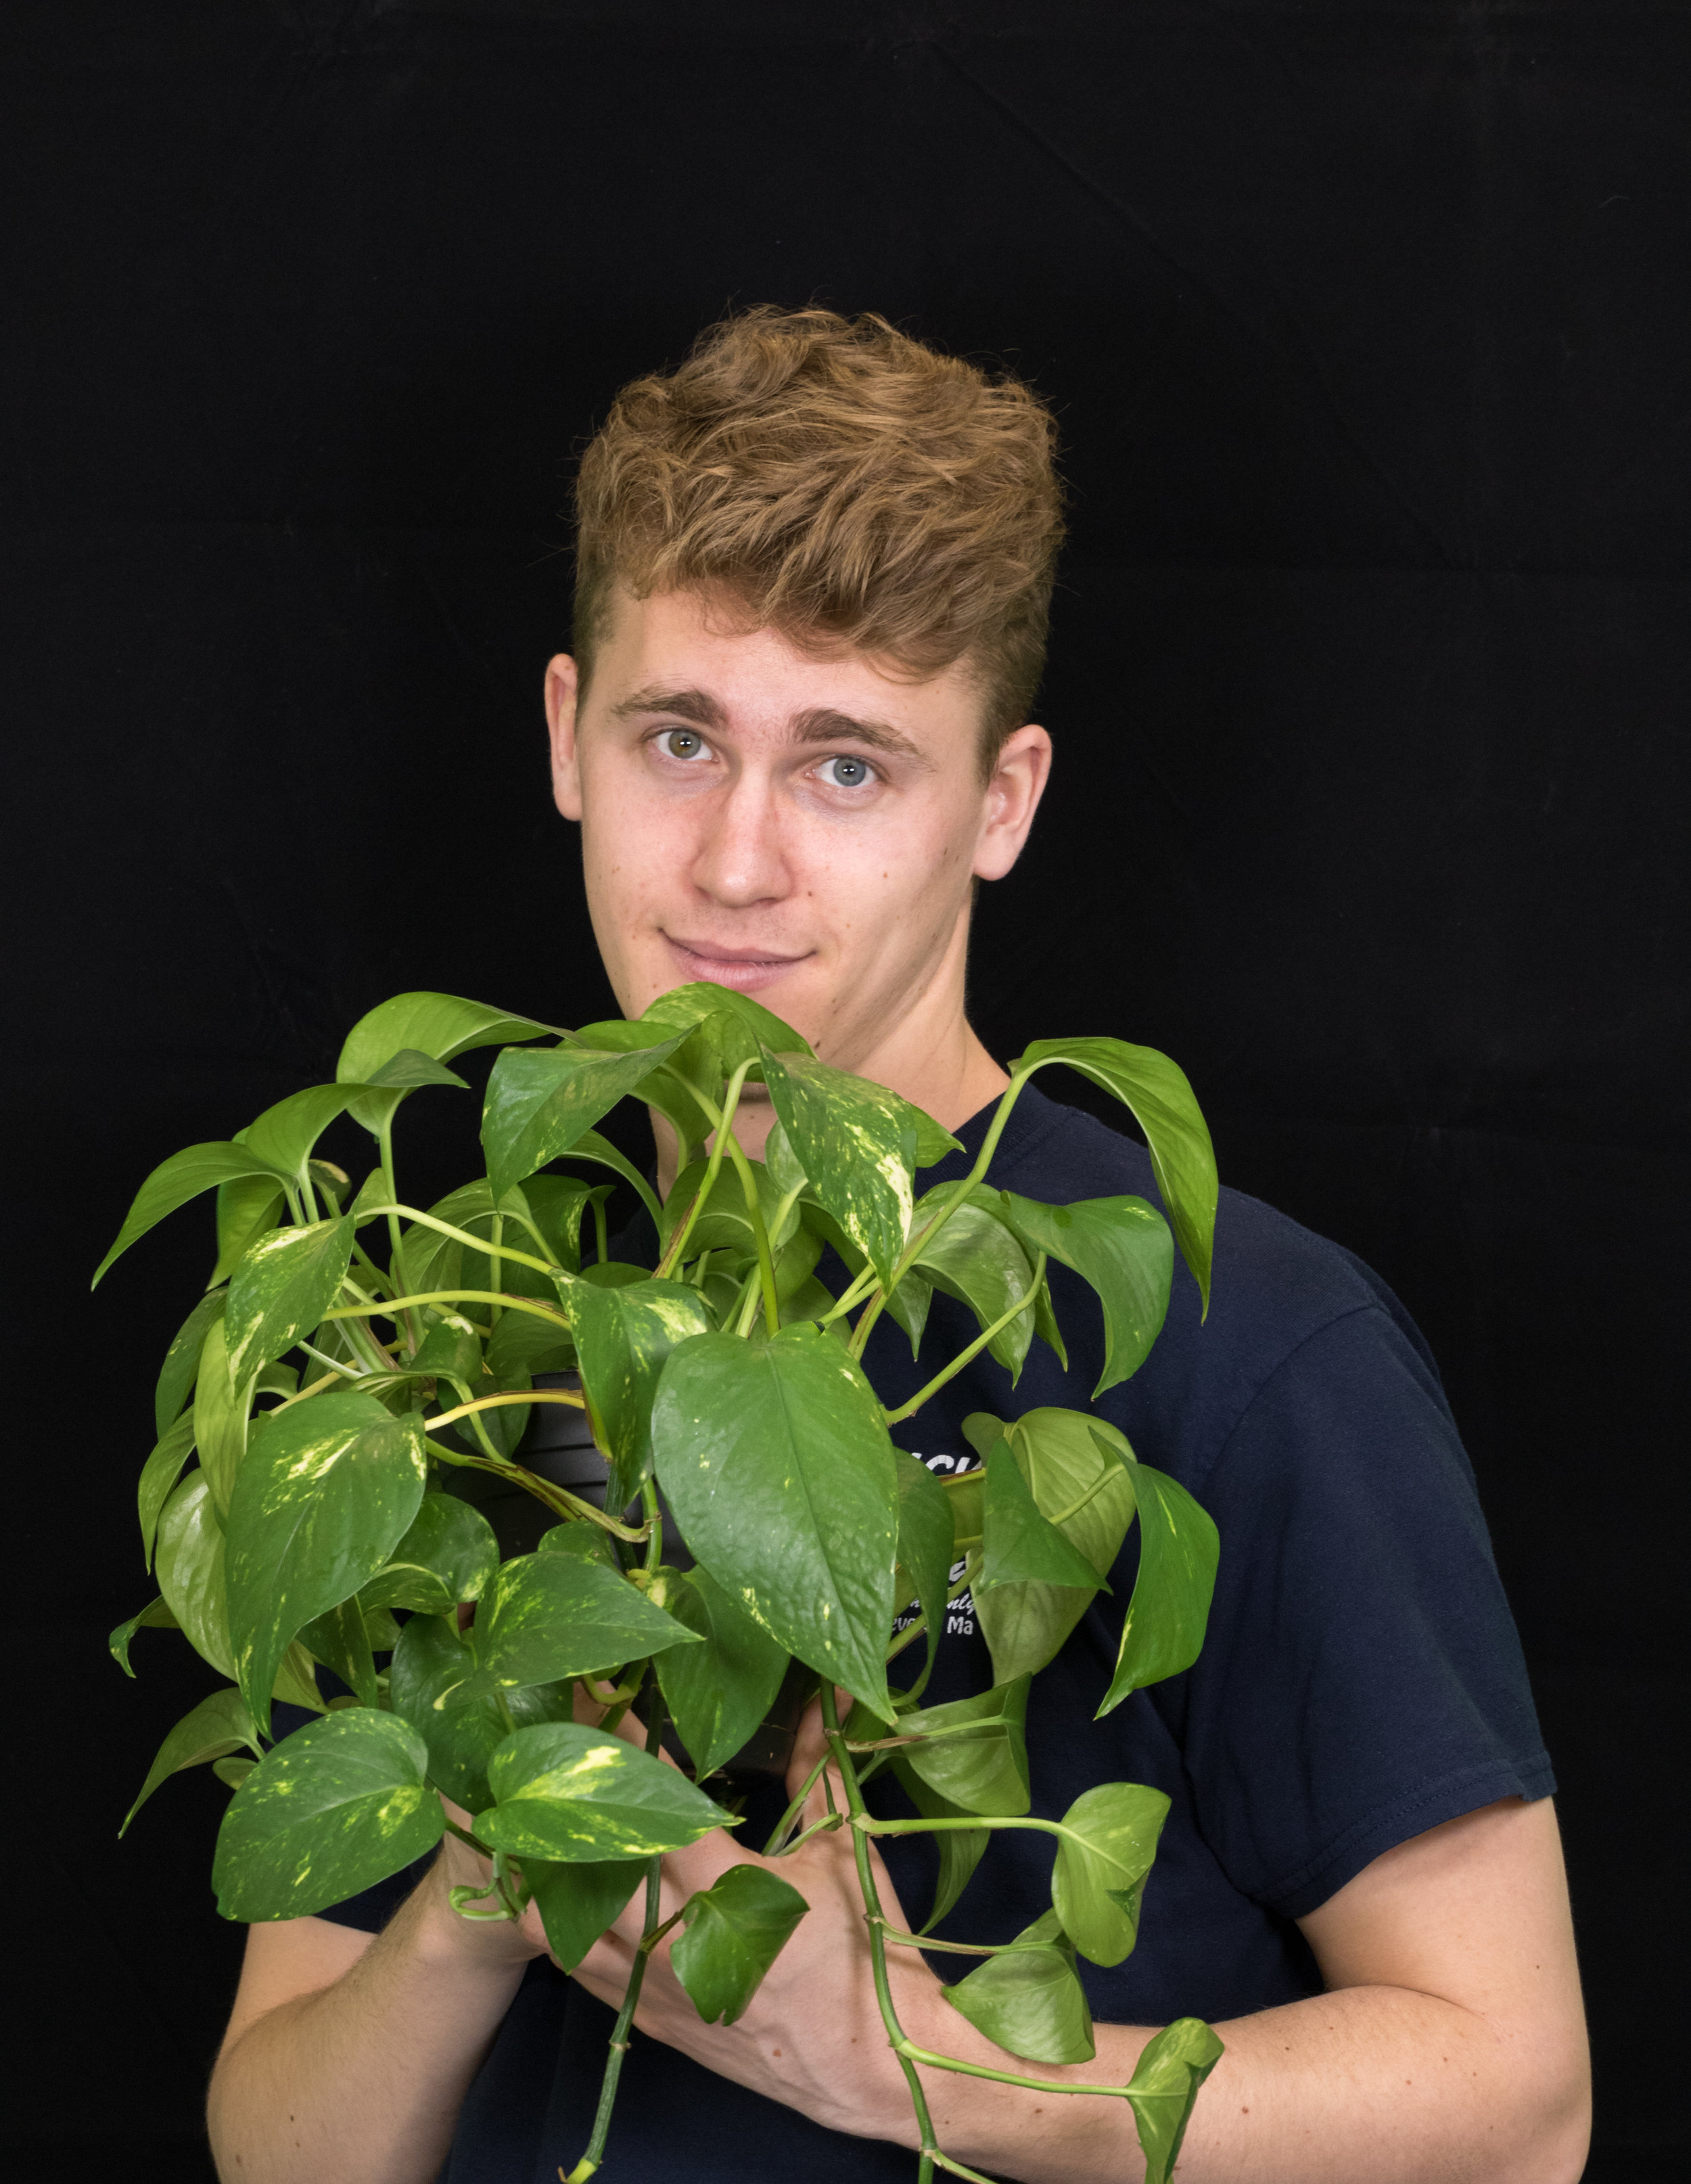 Ben with plant.jpg